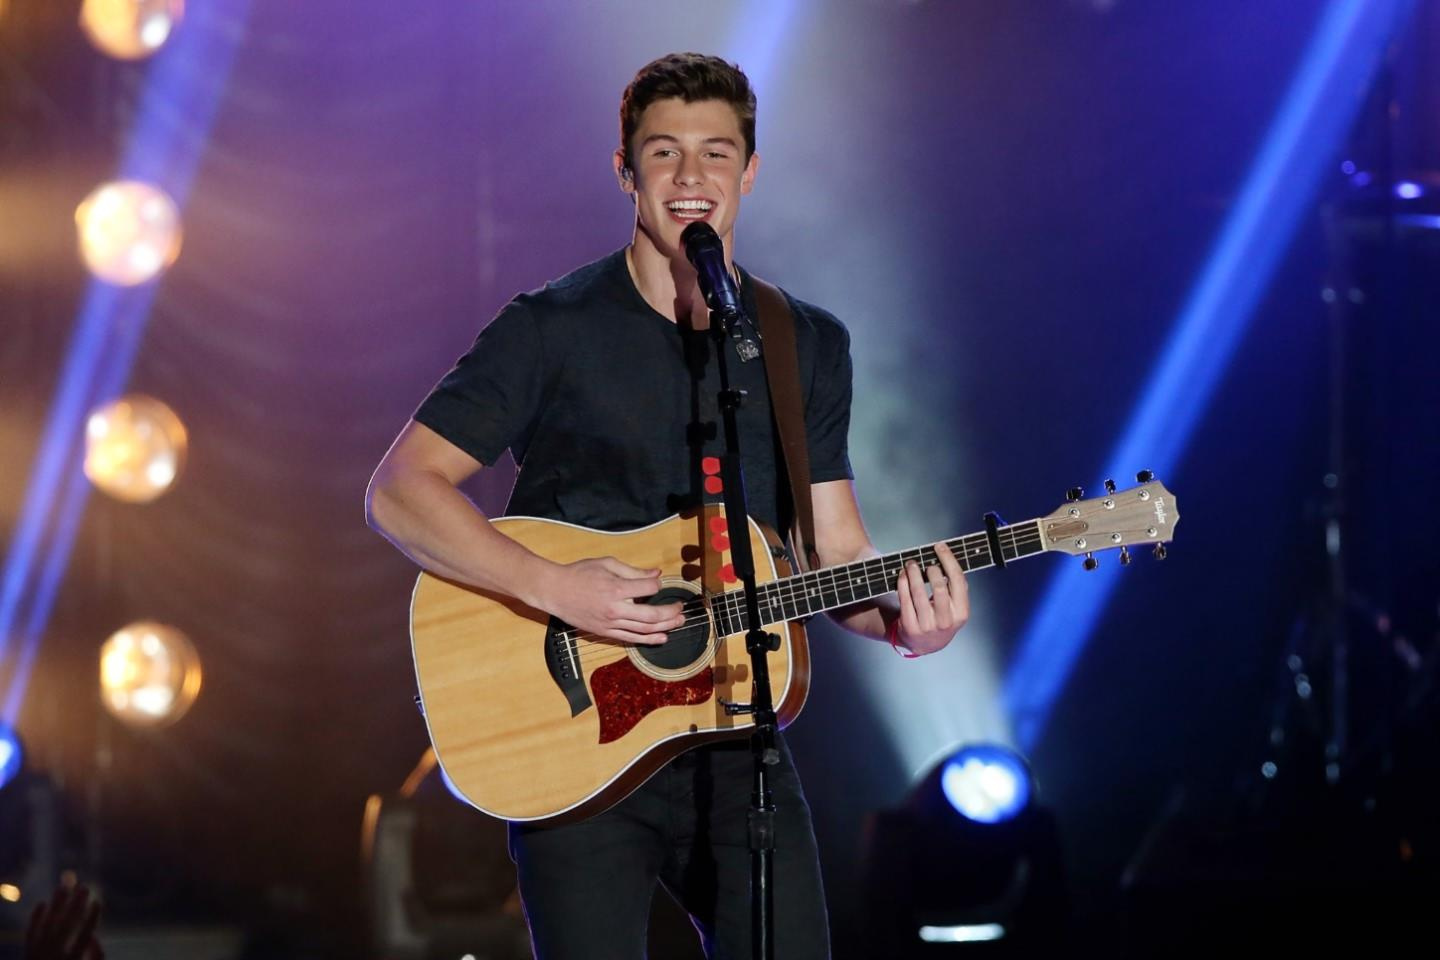 Shawn Mendes Tickets | Shawn Mendes Tour 2019 and Concert